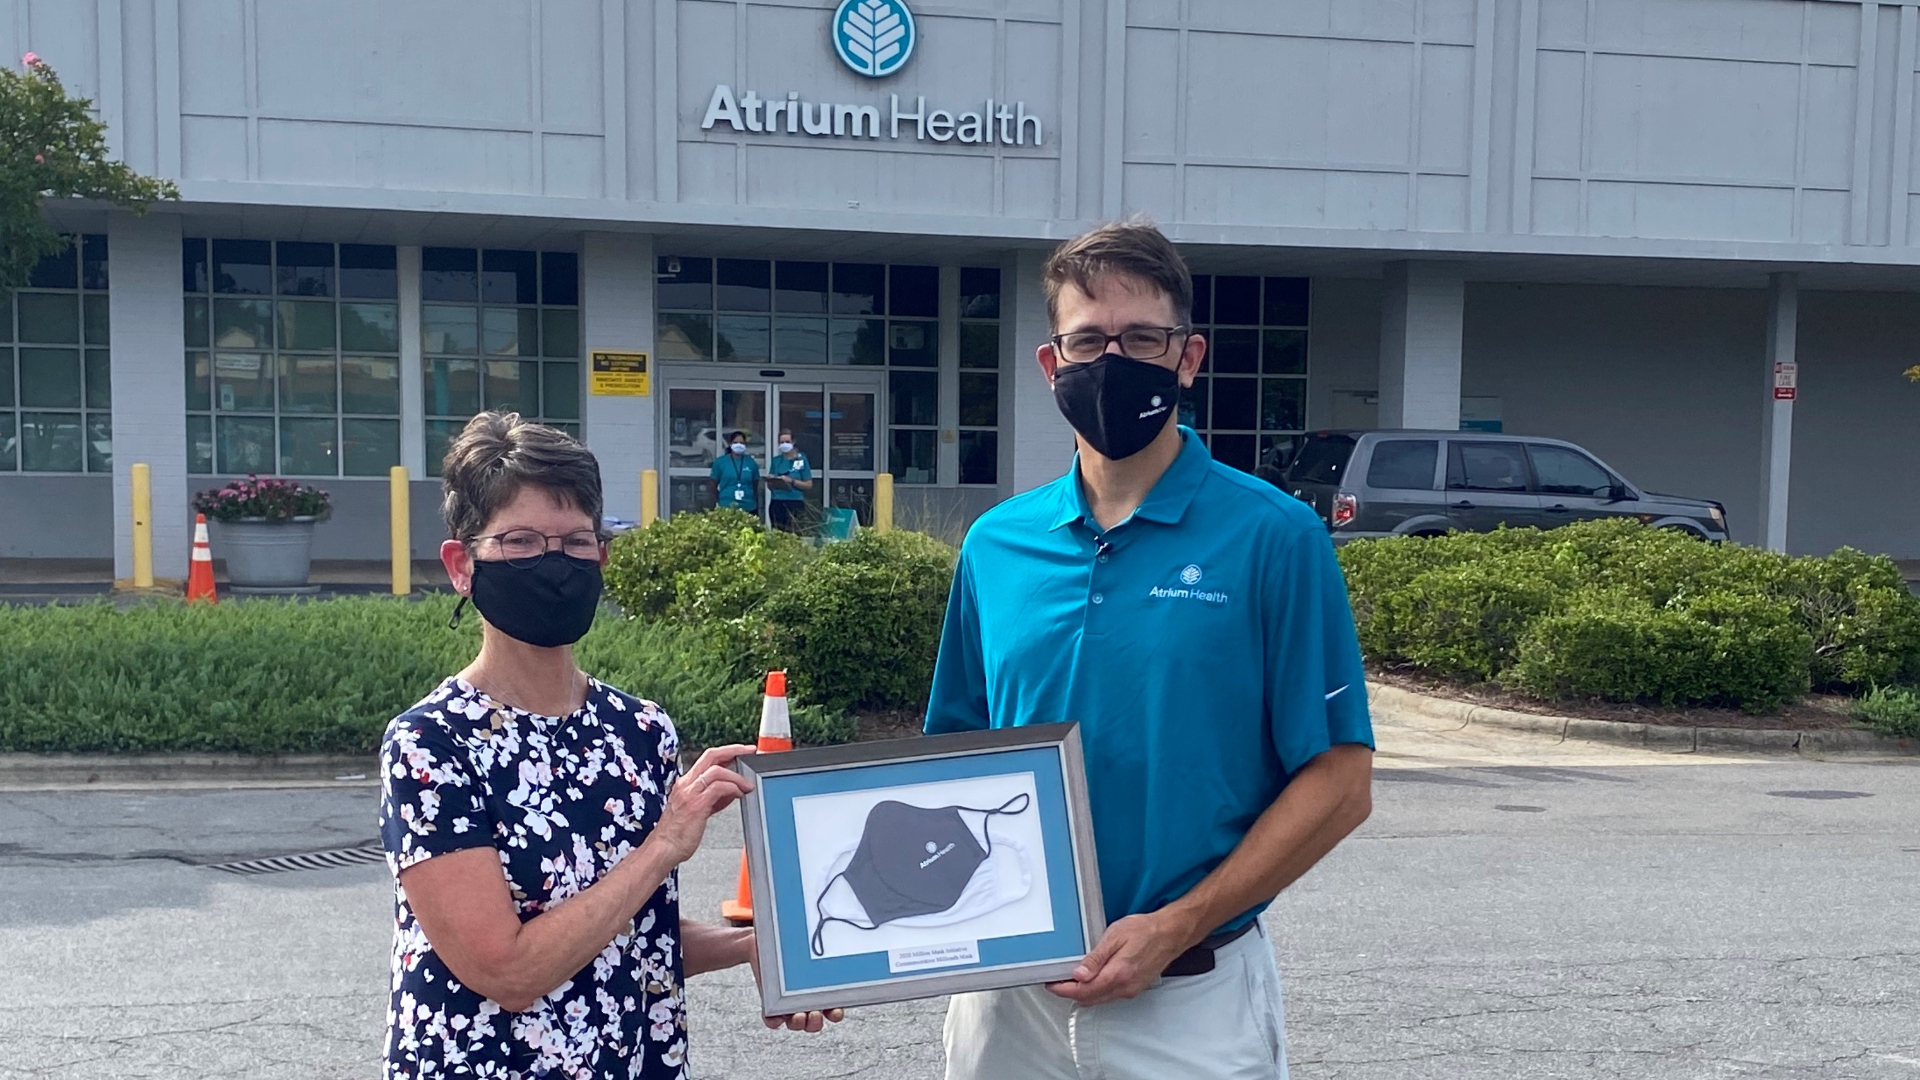 Atrium Health has passed a significant milestone in its Million Mask Initiative, announcing today it has now distributed more than 1 million free masks in the Charlotte region.